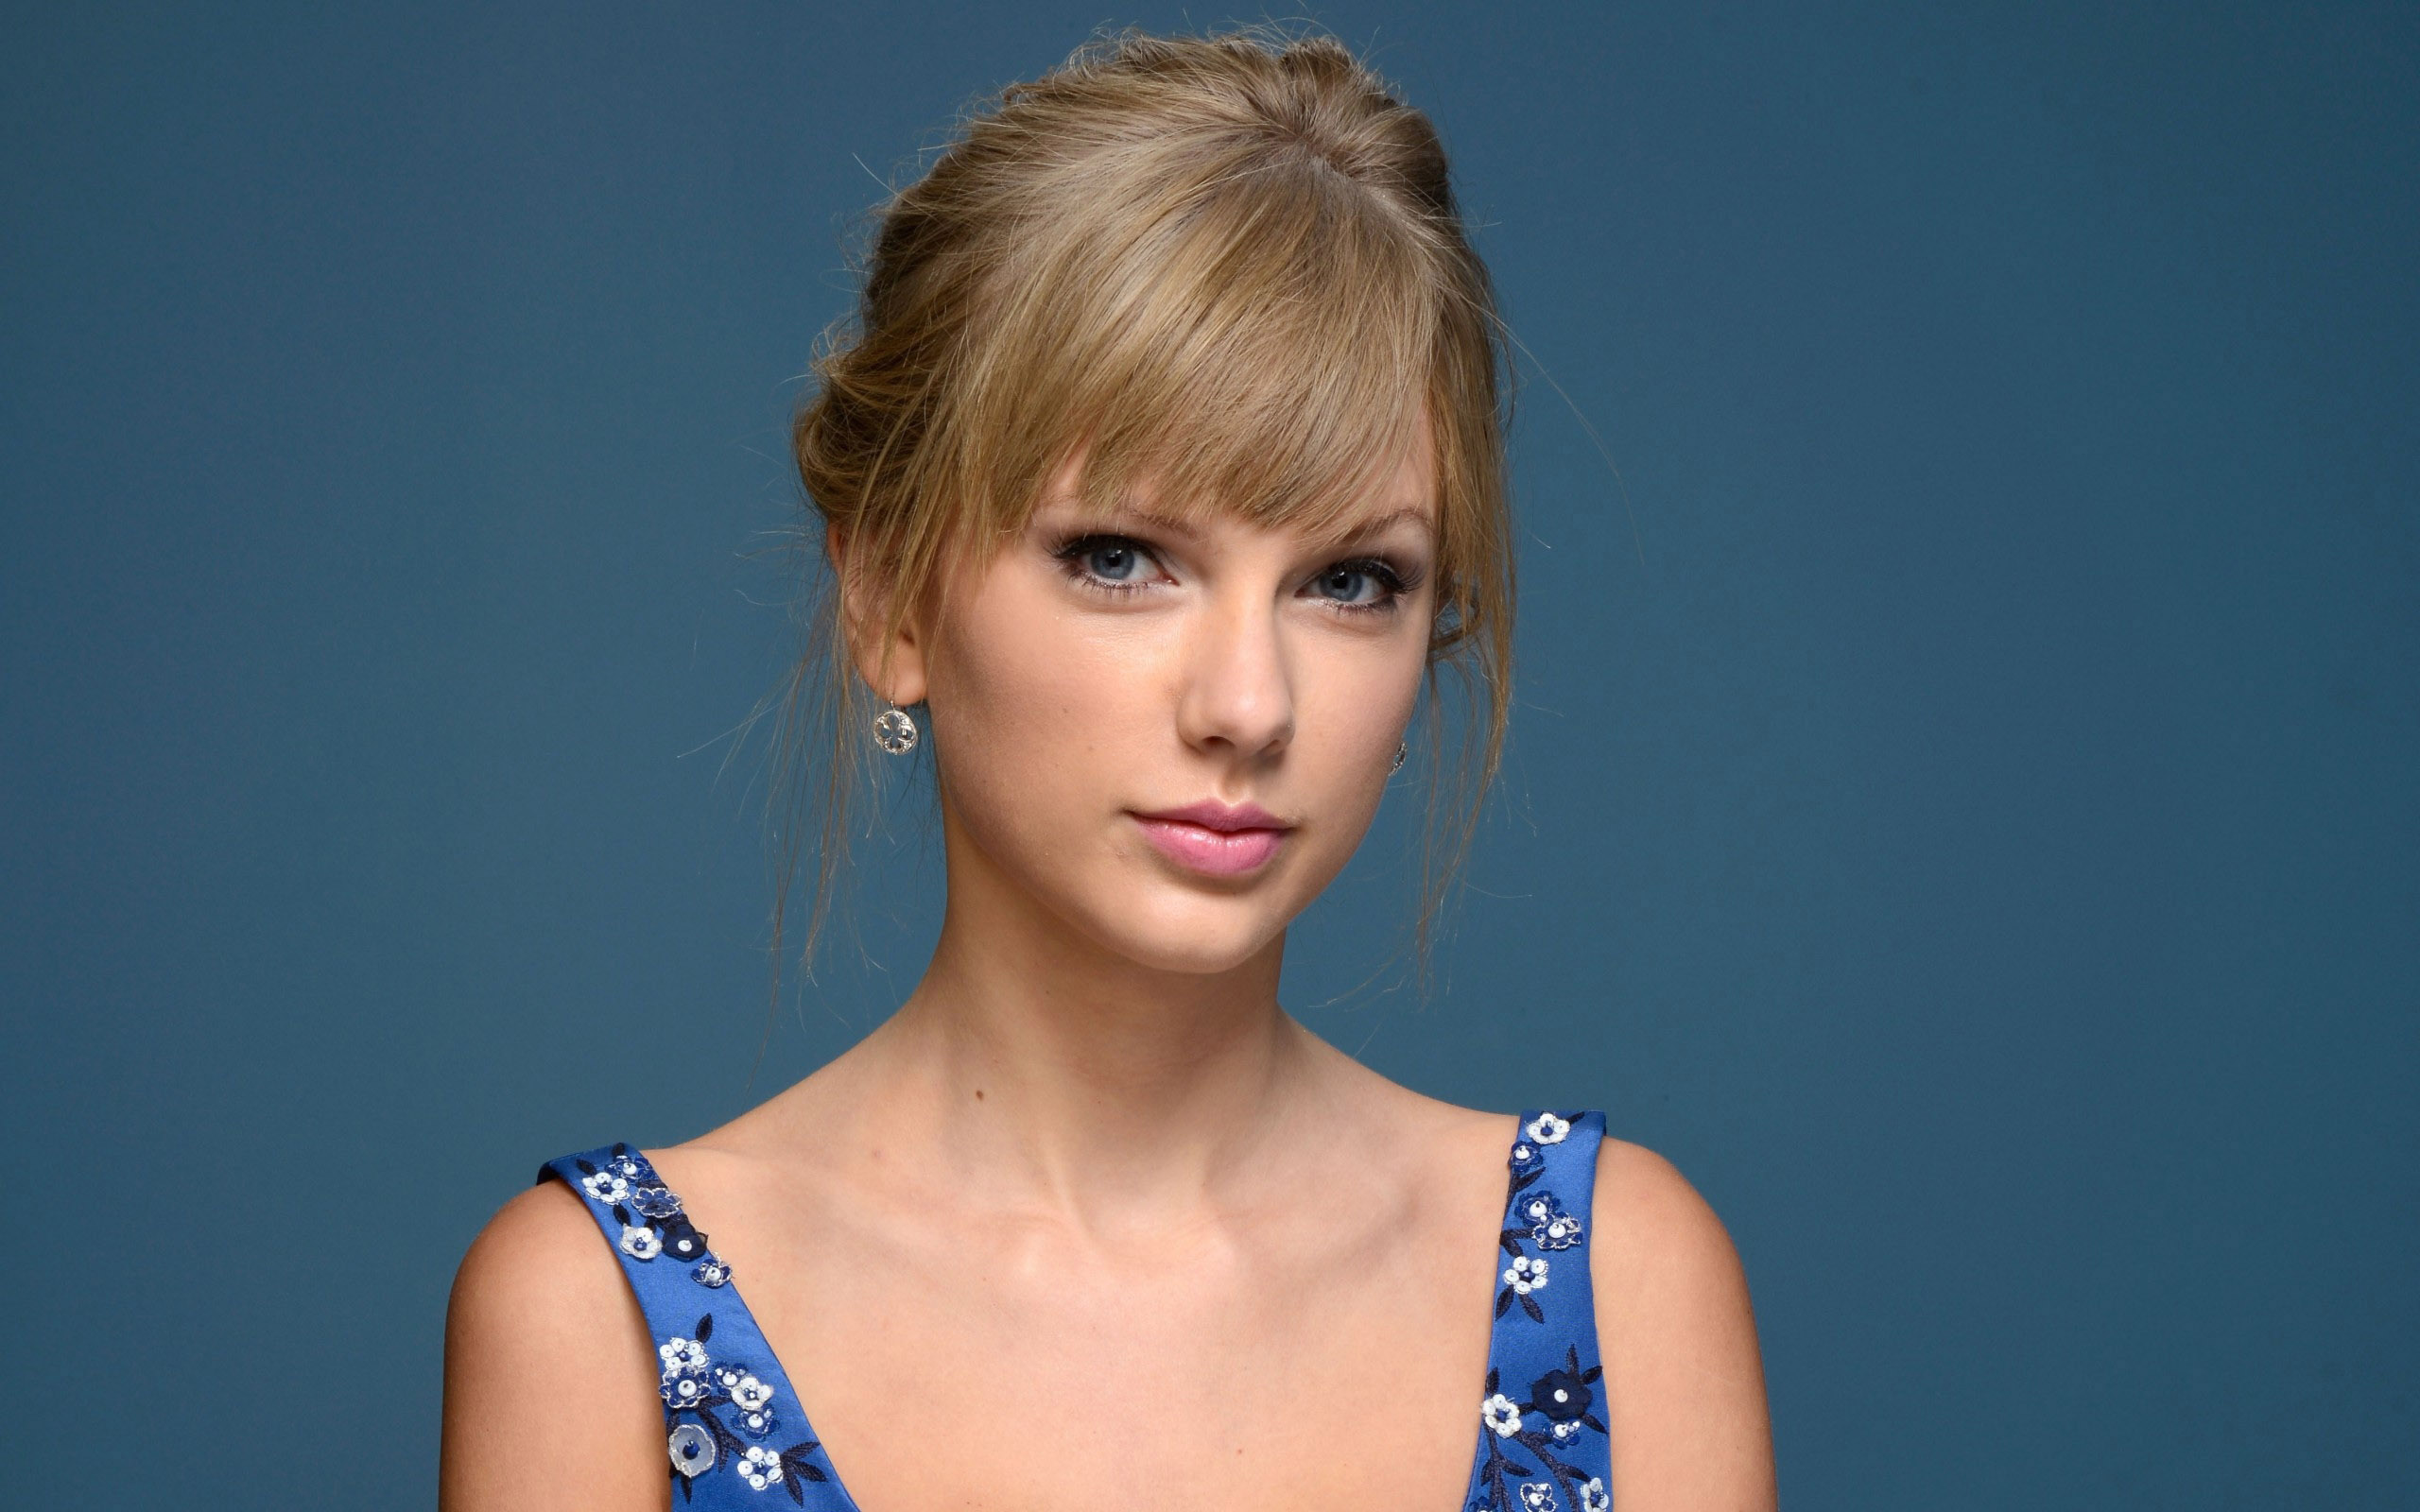 Taylor Swift 2015 Wallpapers 2560x1600